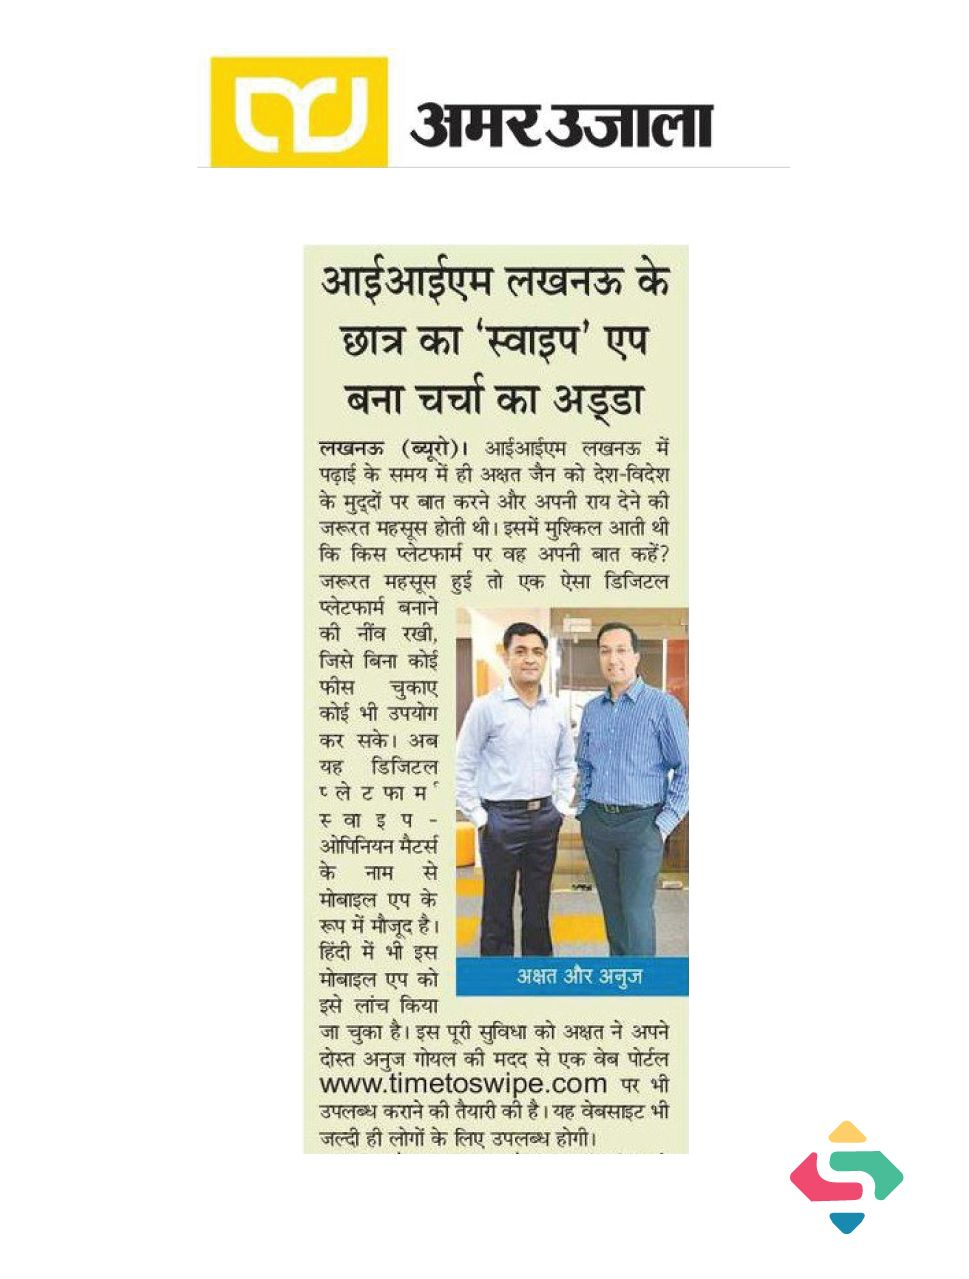 How did Akshat Jain from IIM Lucknow along with his friend